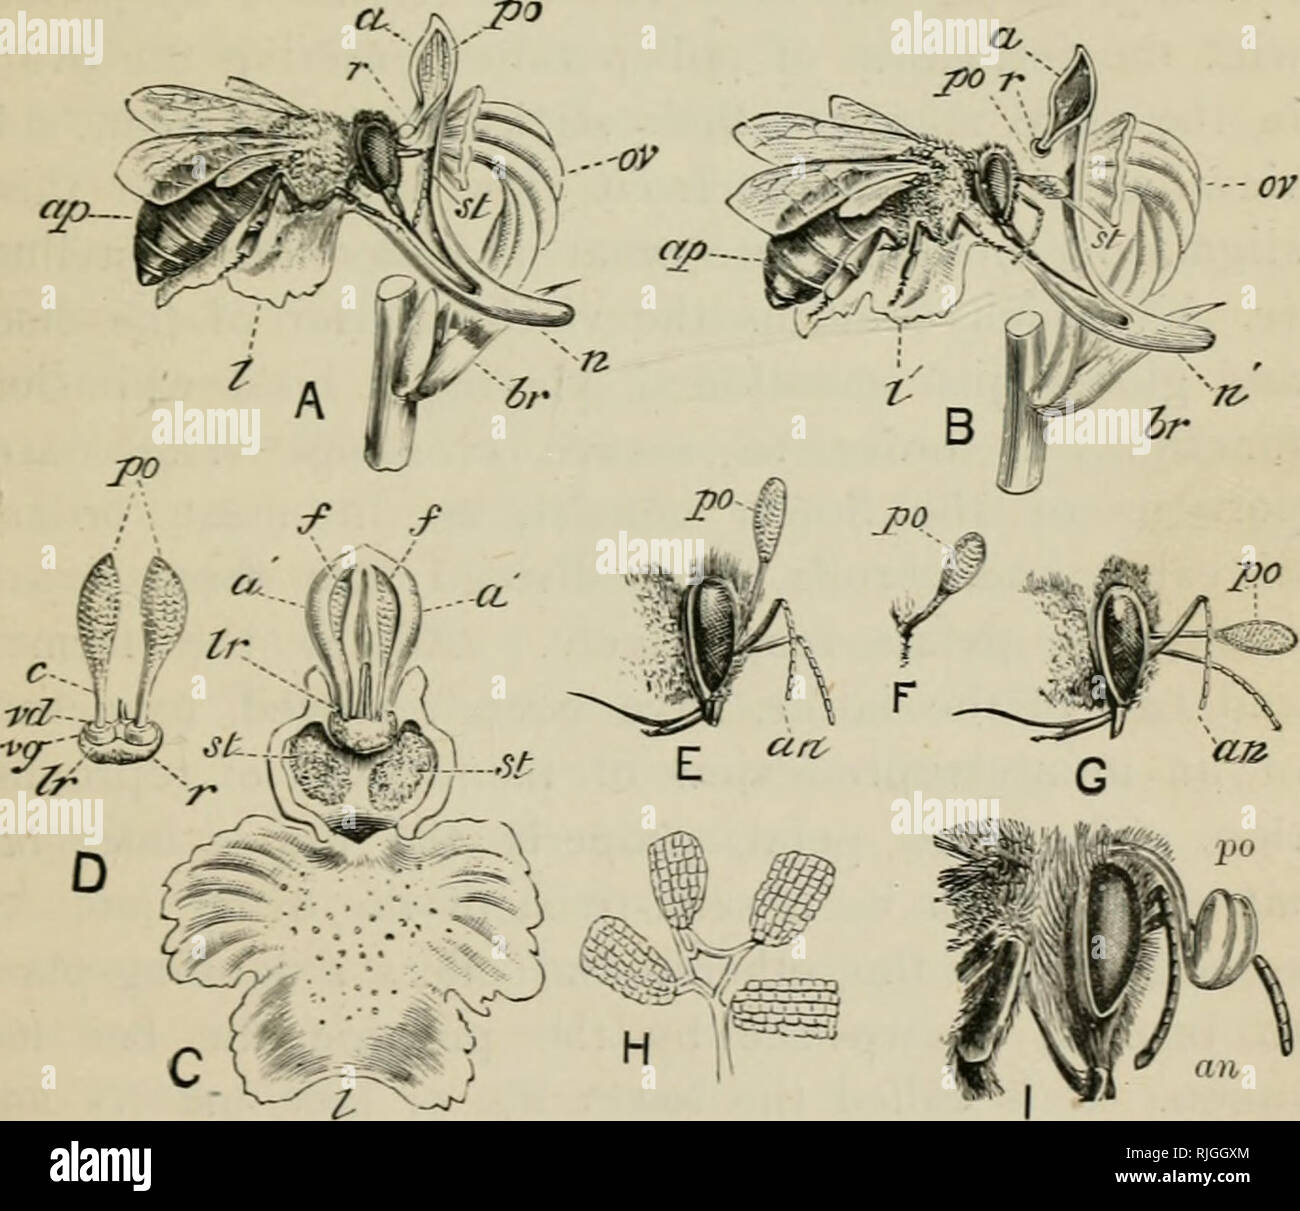 Orchid Anatomy Stock Photos Orchid Anatomy Stock Images Alamy